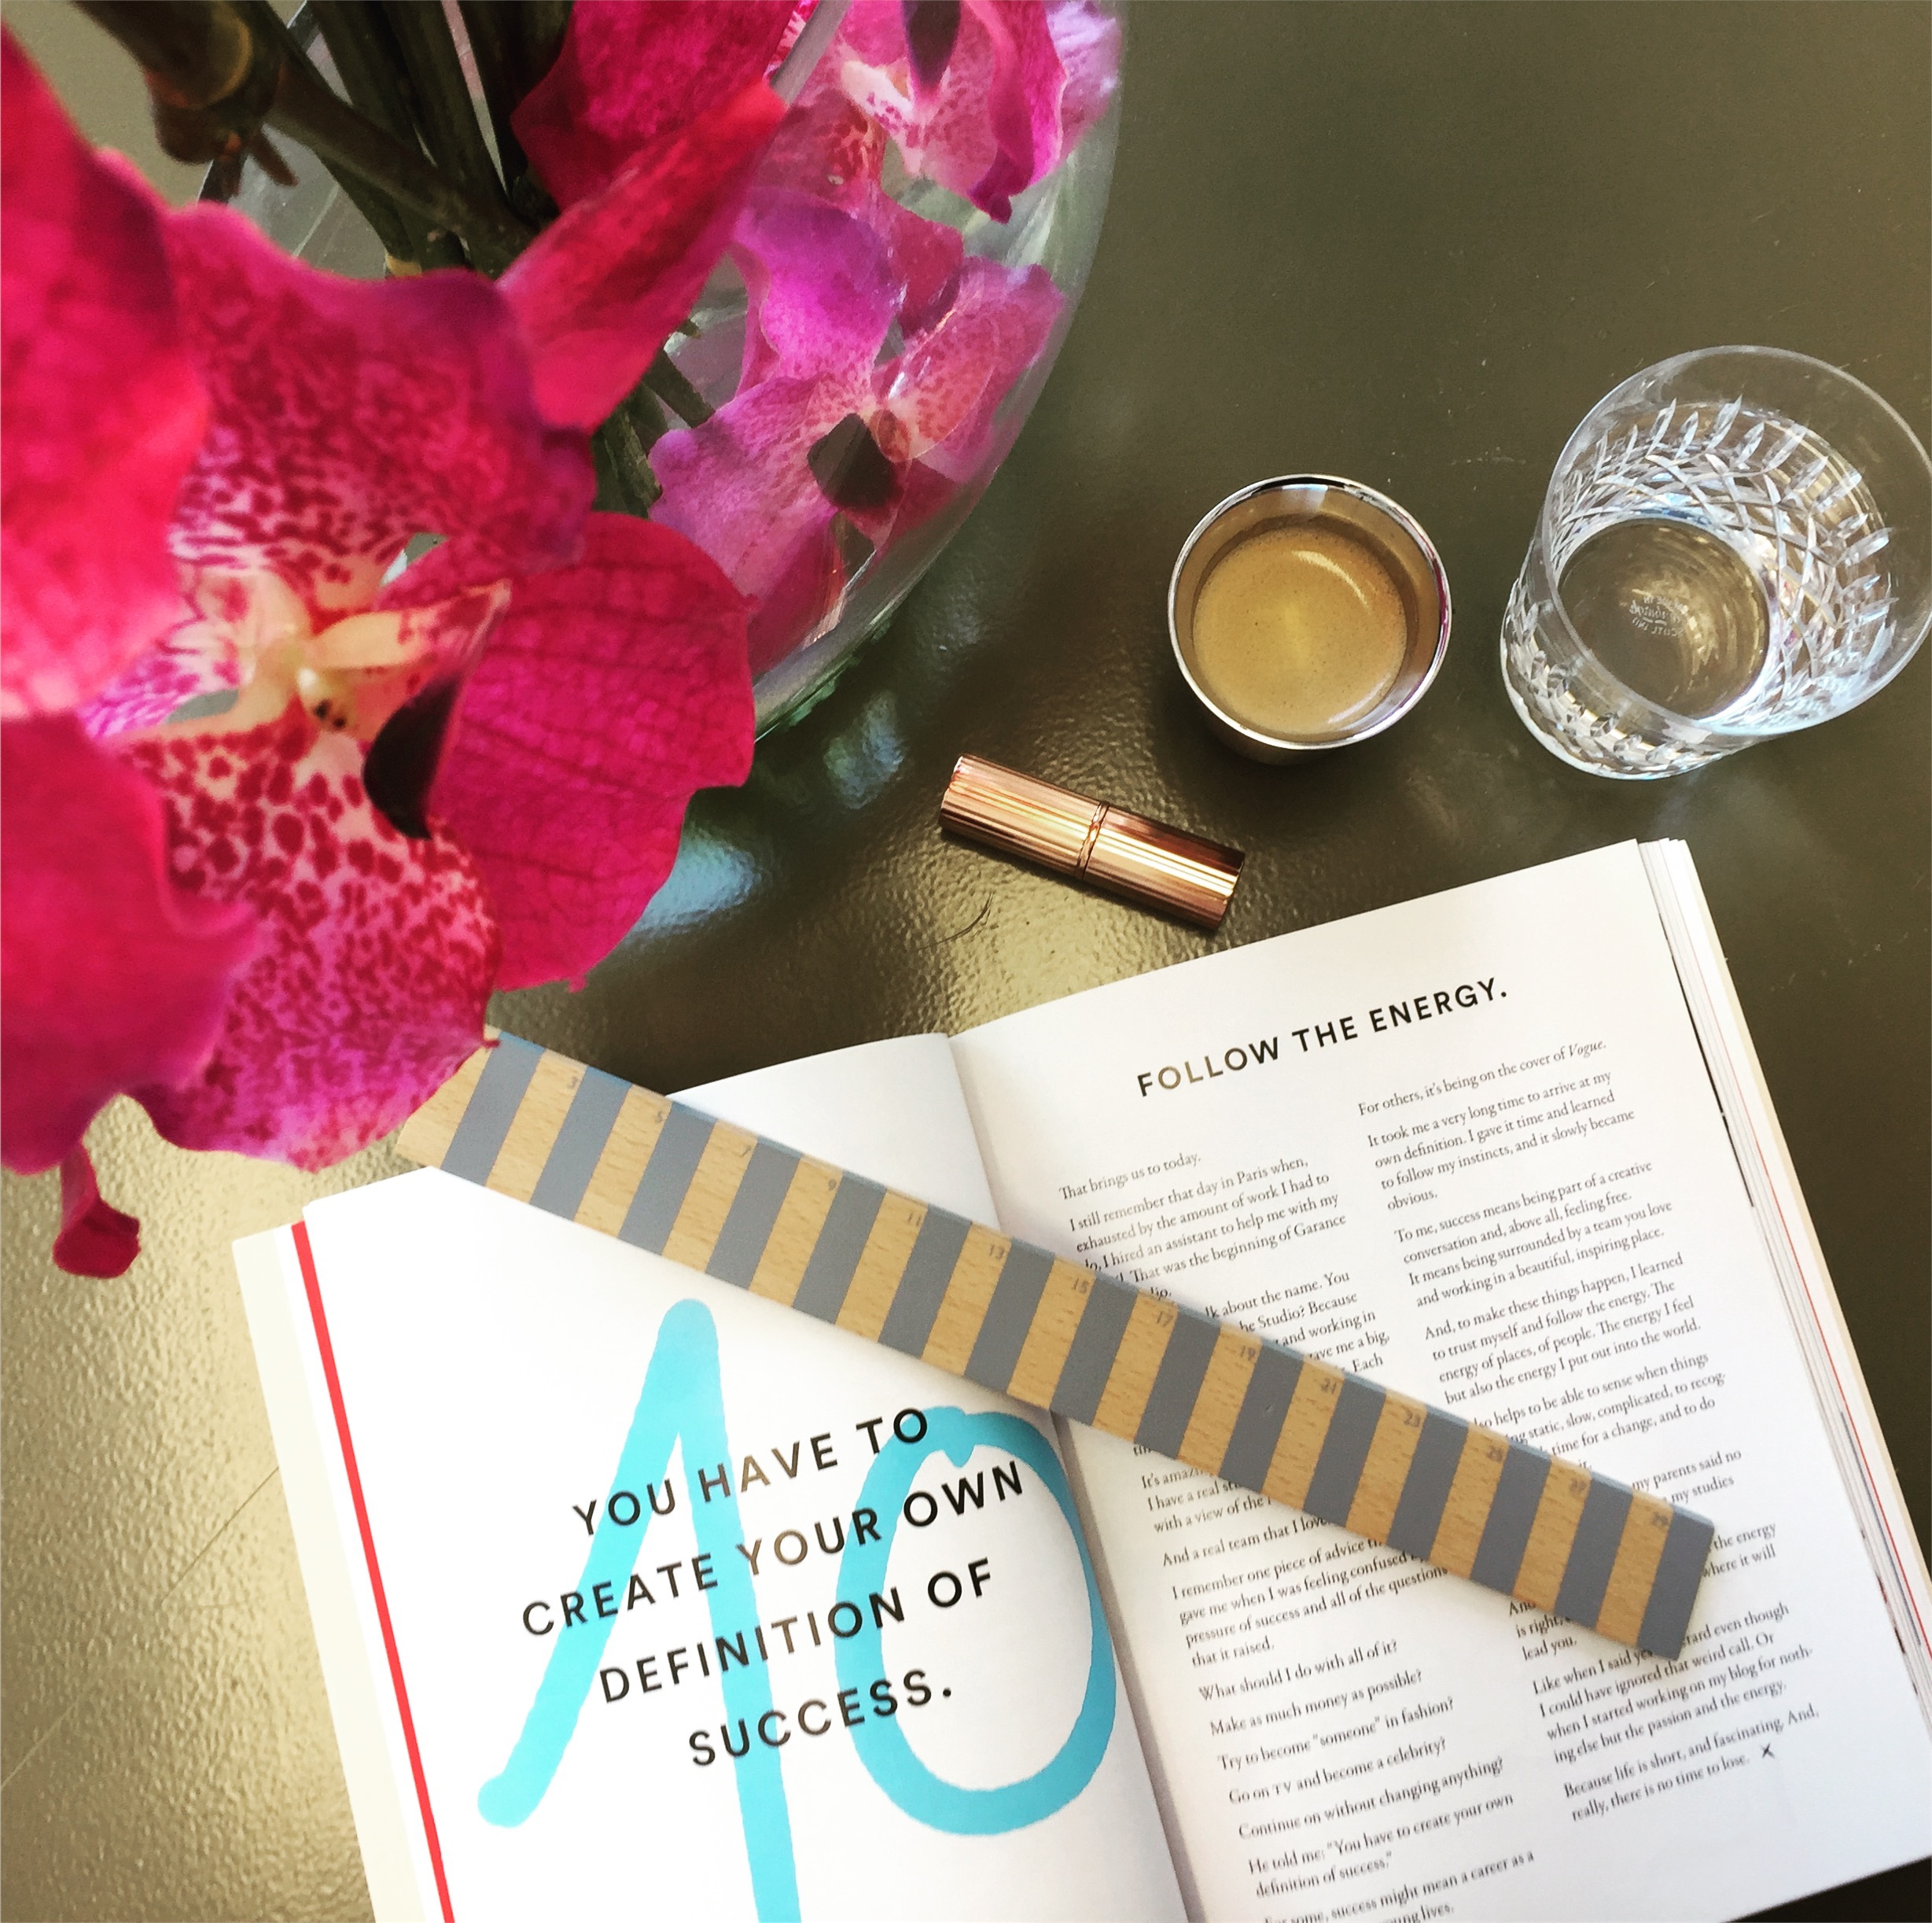 Image from my own collection. Book by Garance Dore.